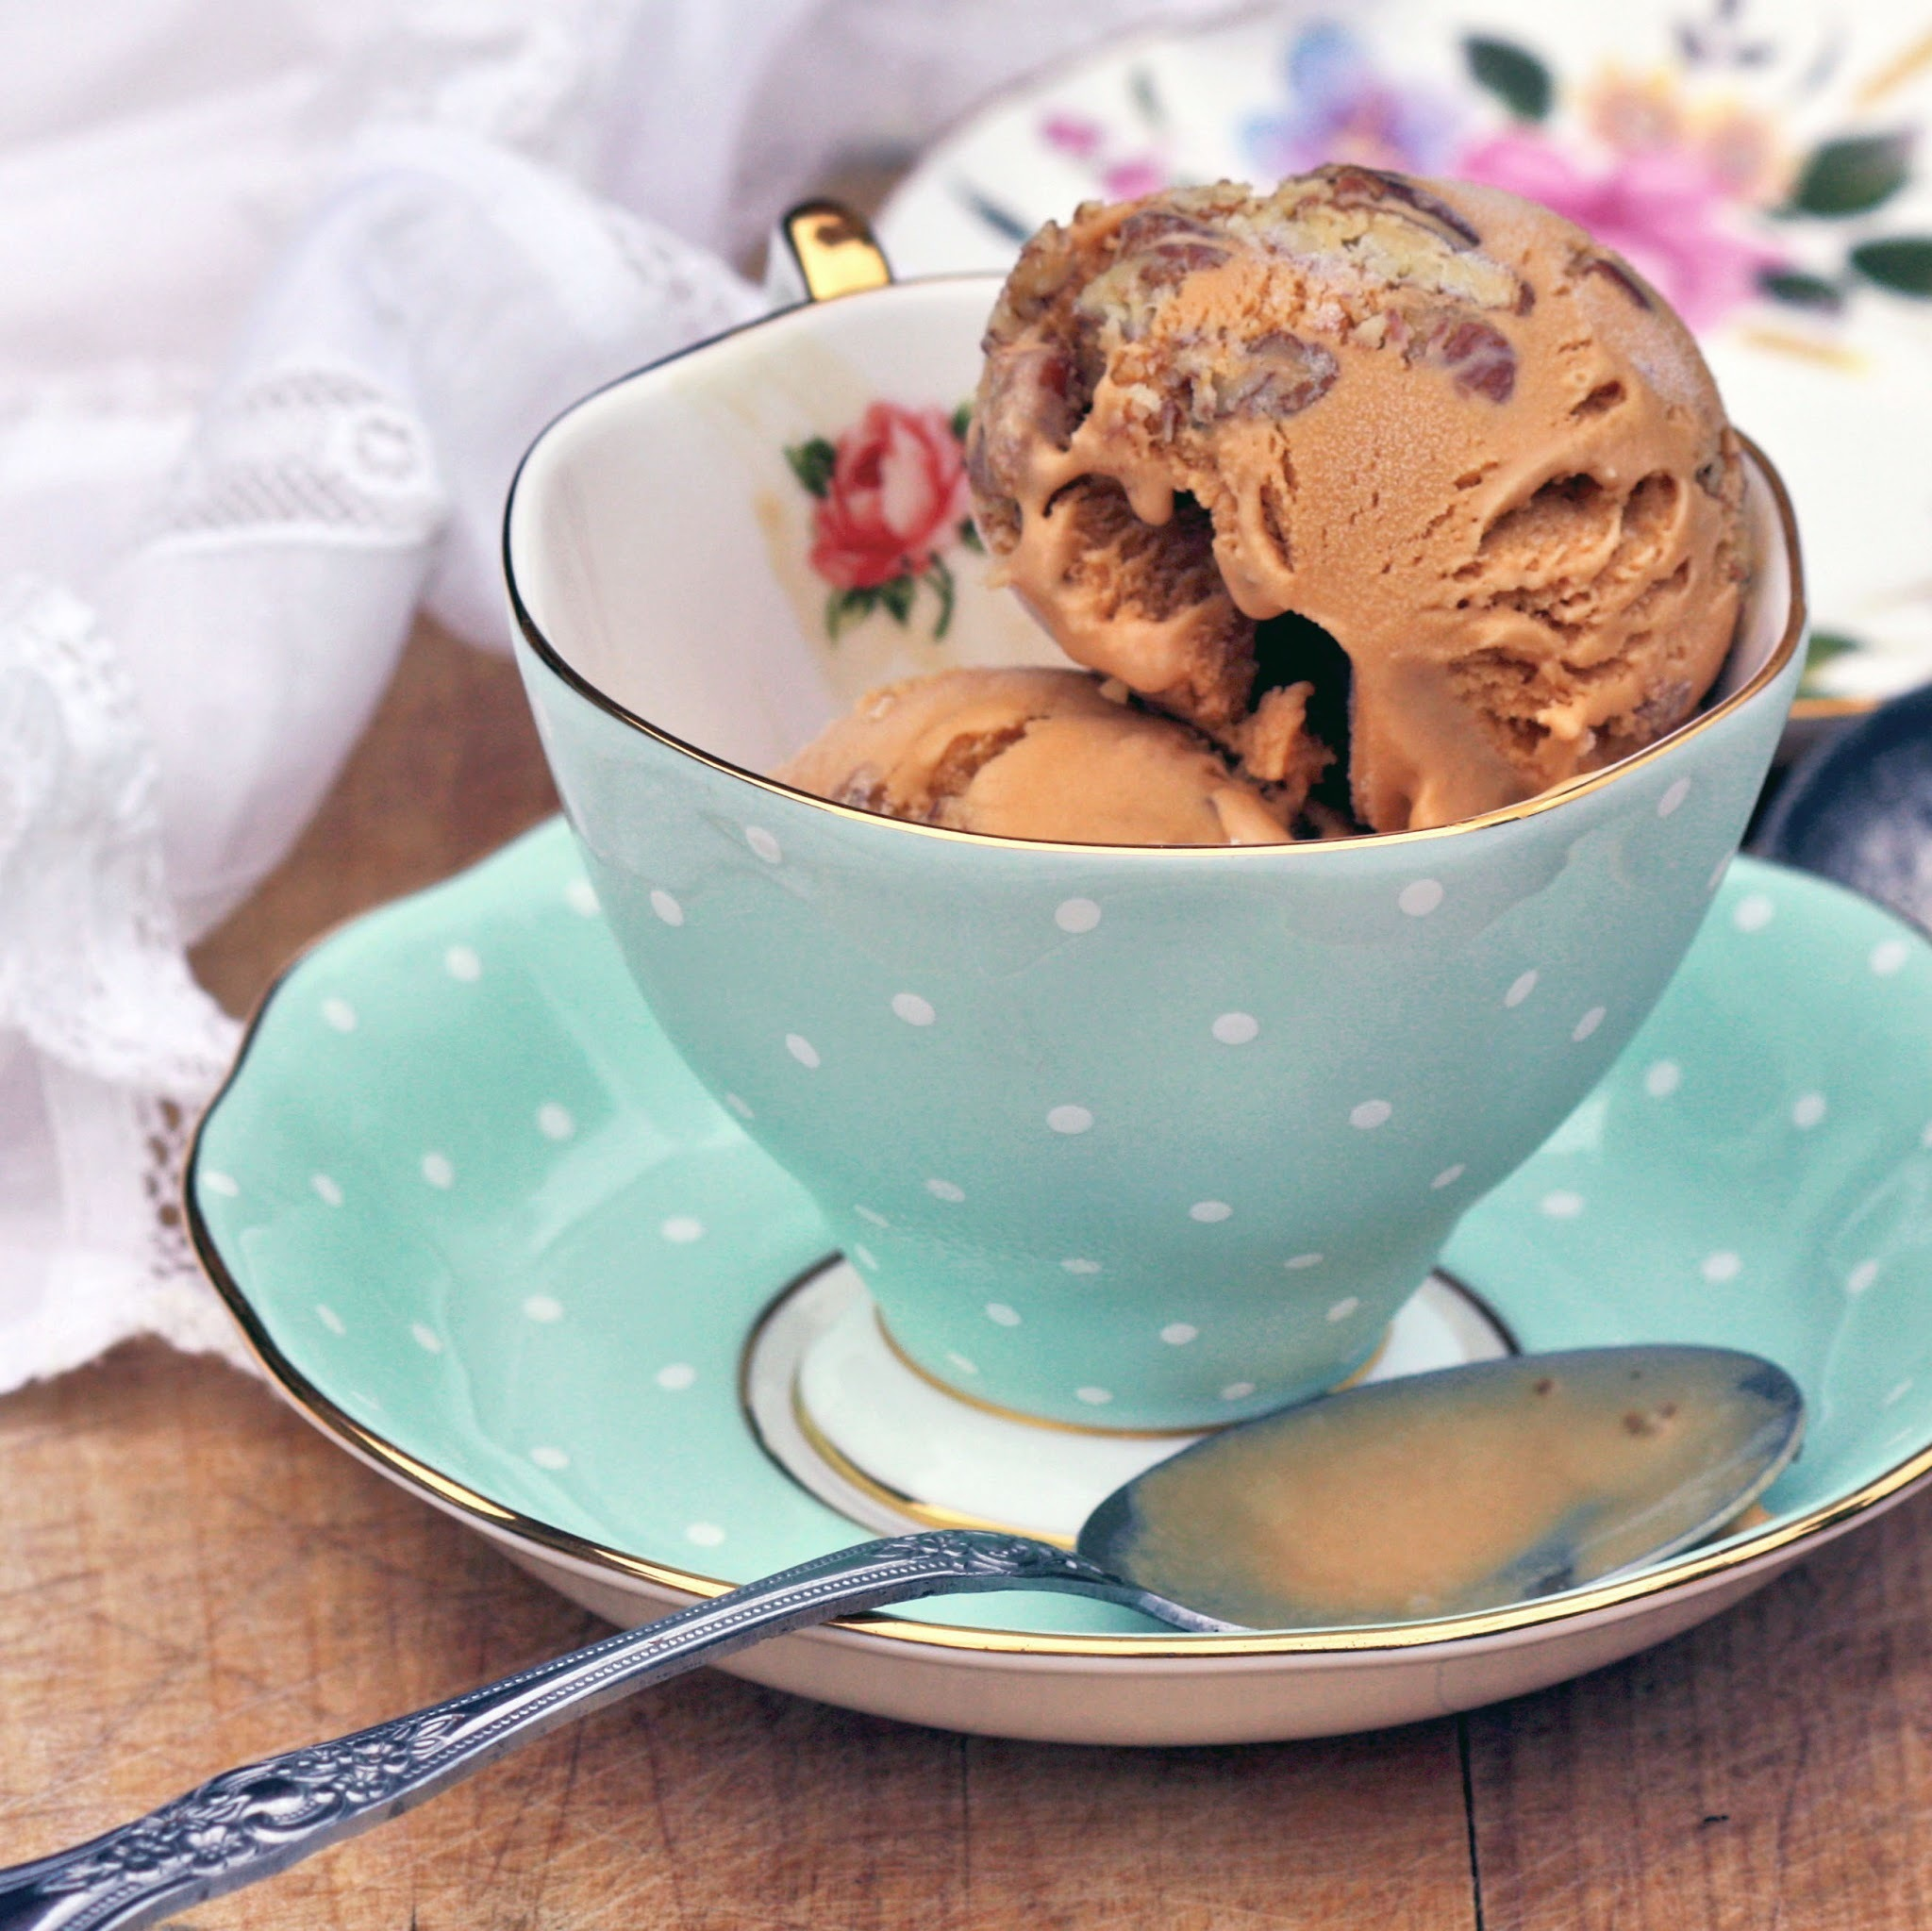 Salted Caramel Ice Cream with Butter Pecans